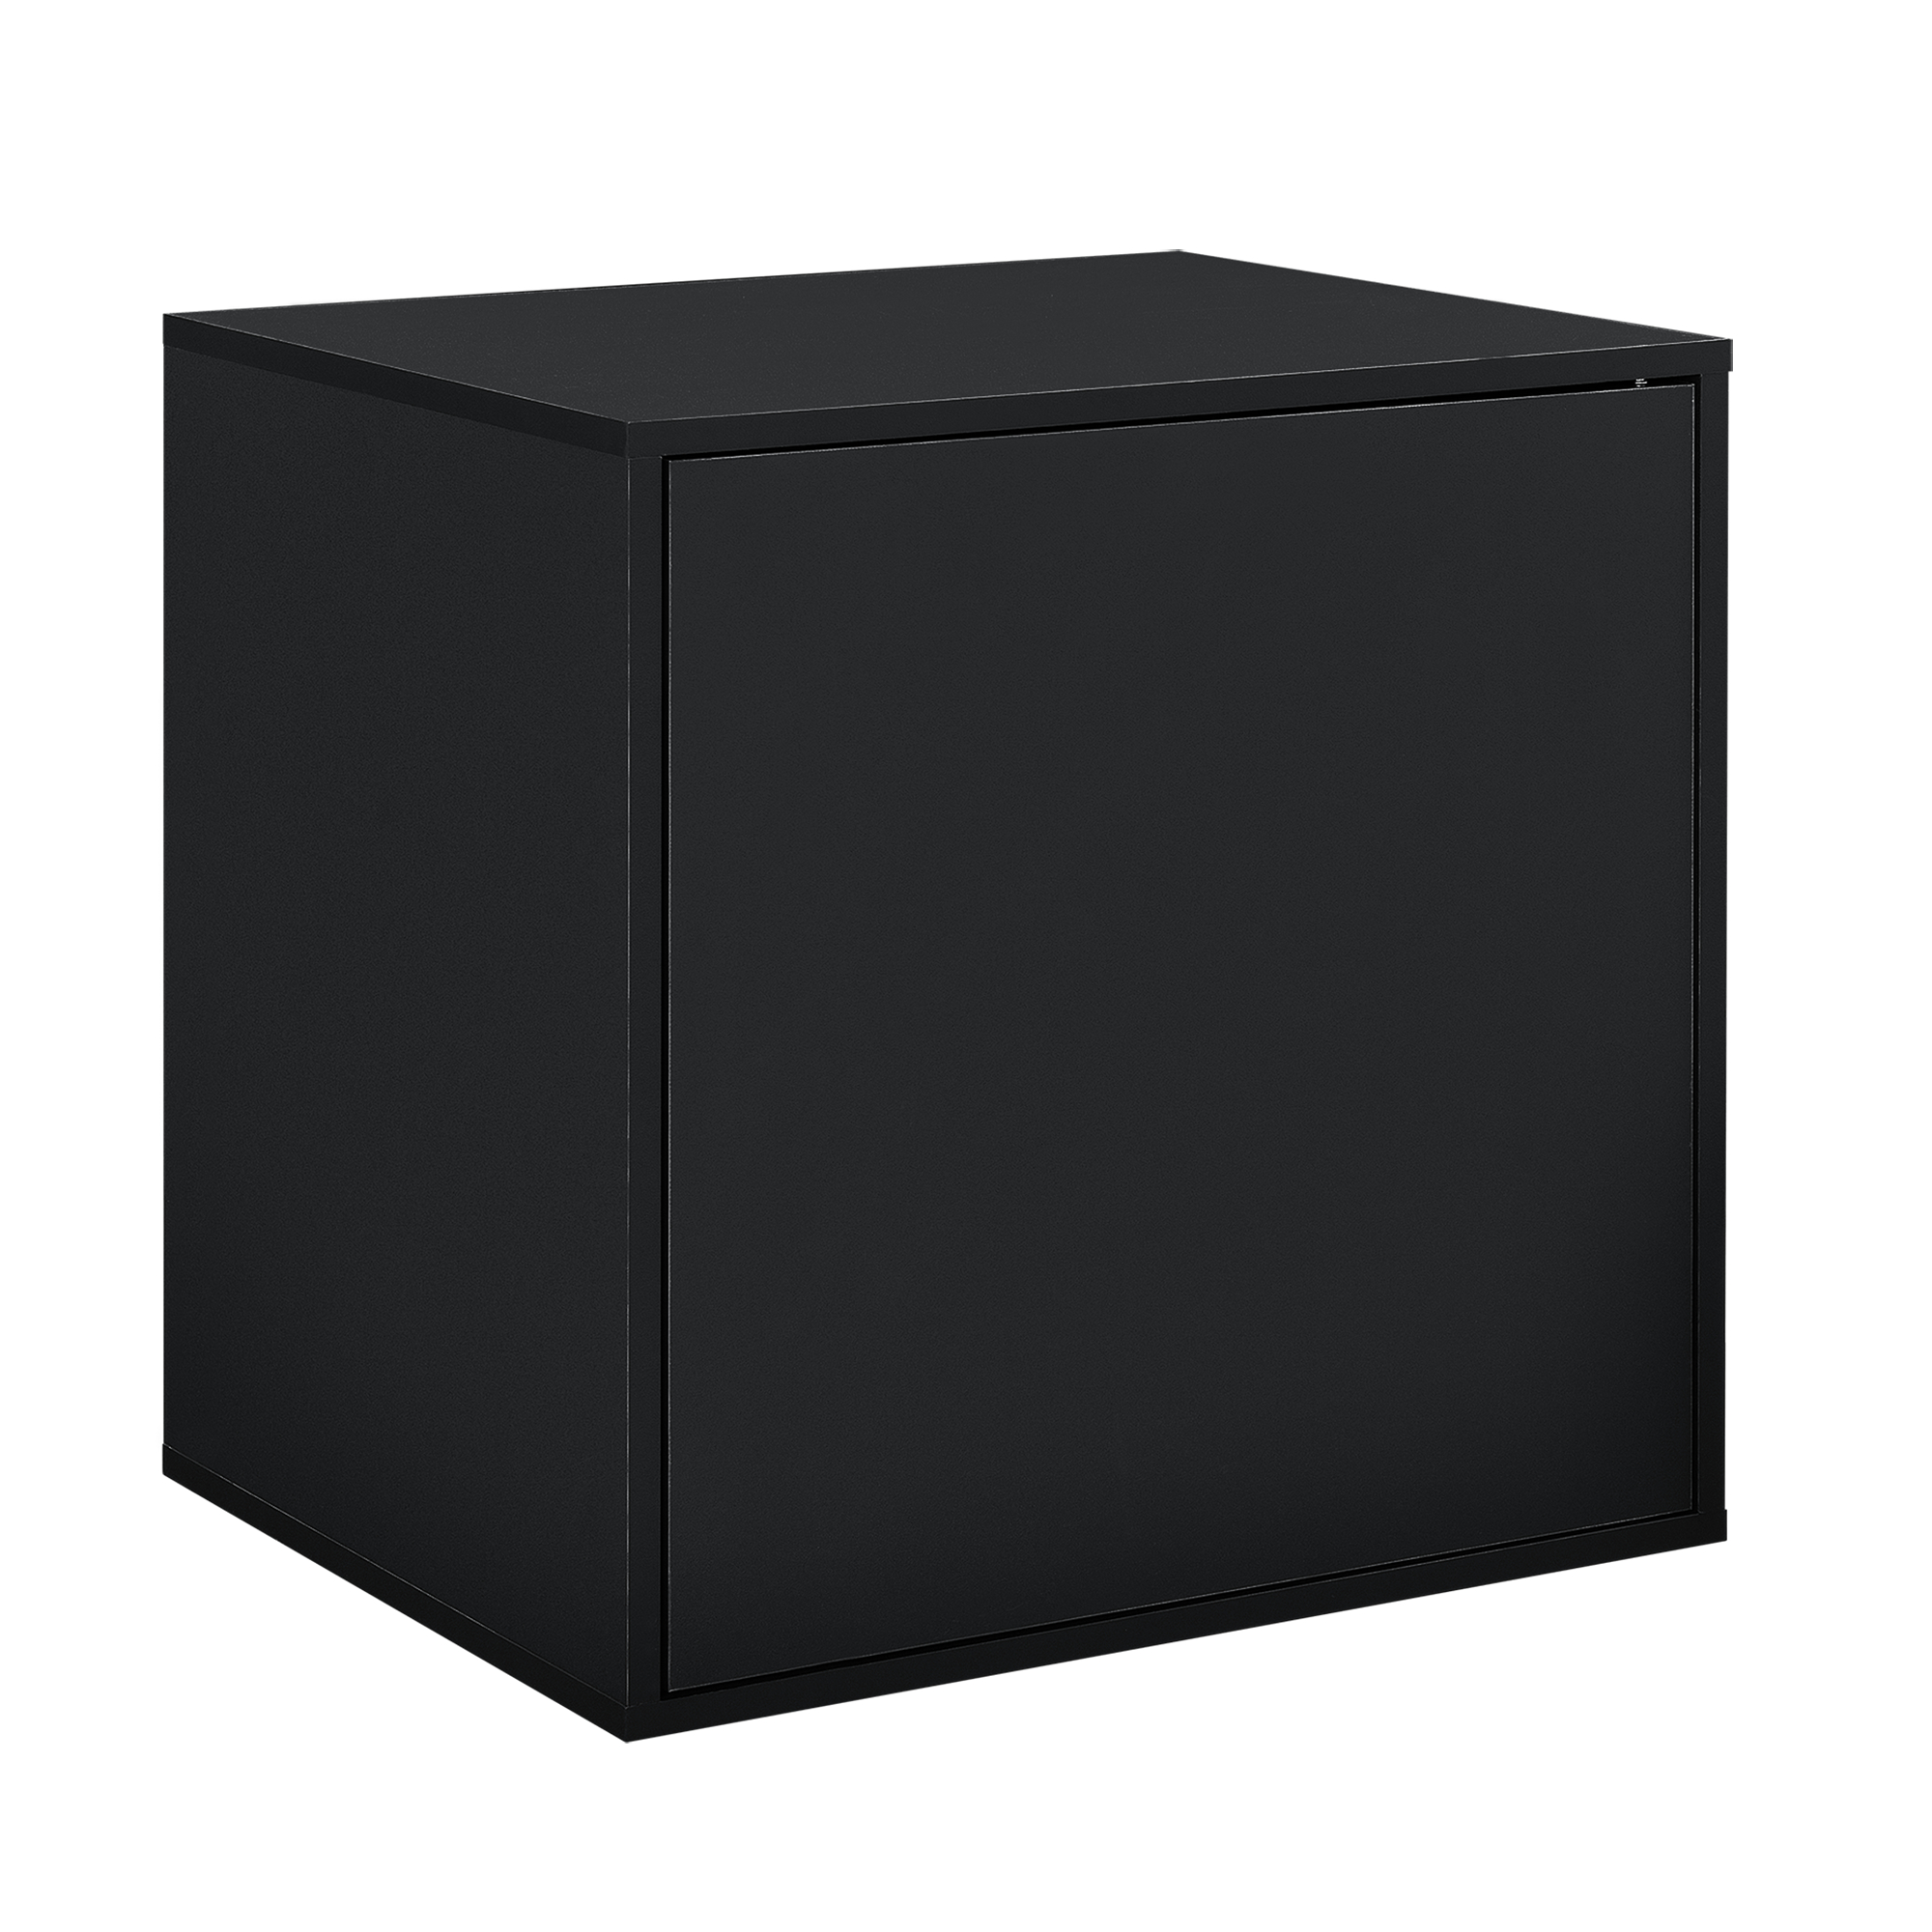 h ngeschrank 45x45x40cm schwarz wandschrank. Black Bedroom Furniture Sets. Home Design Ideas